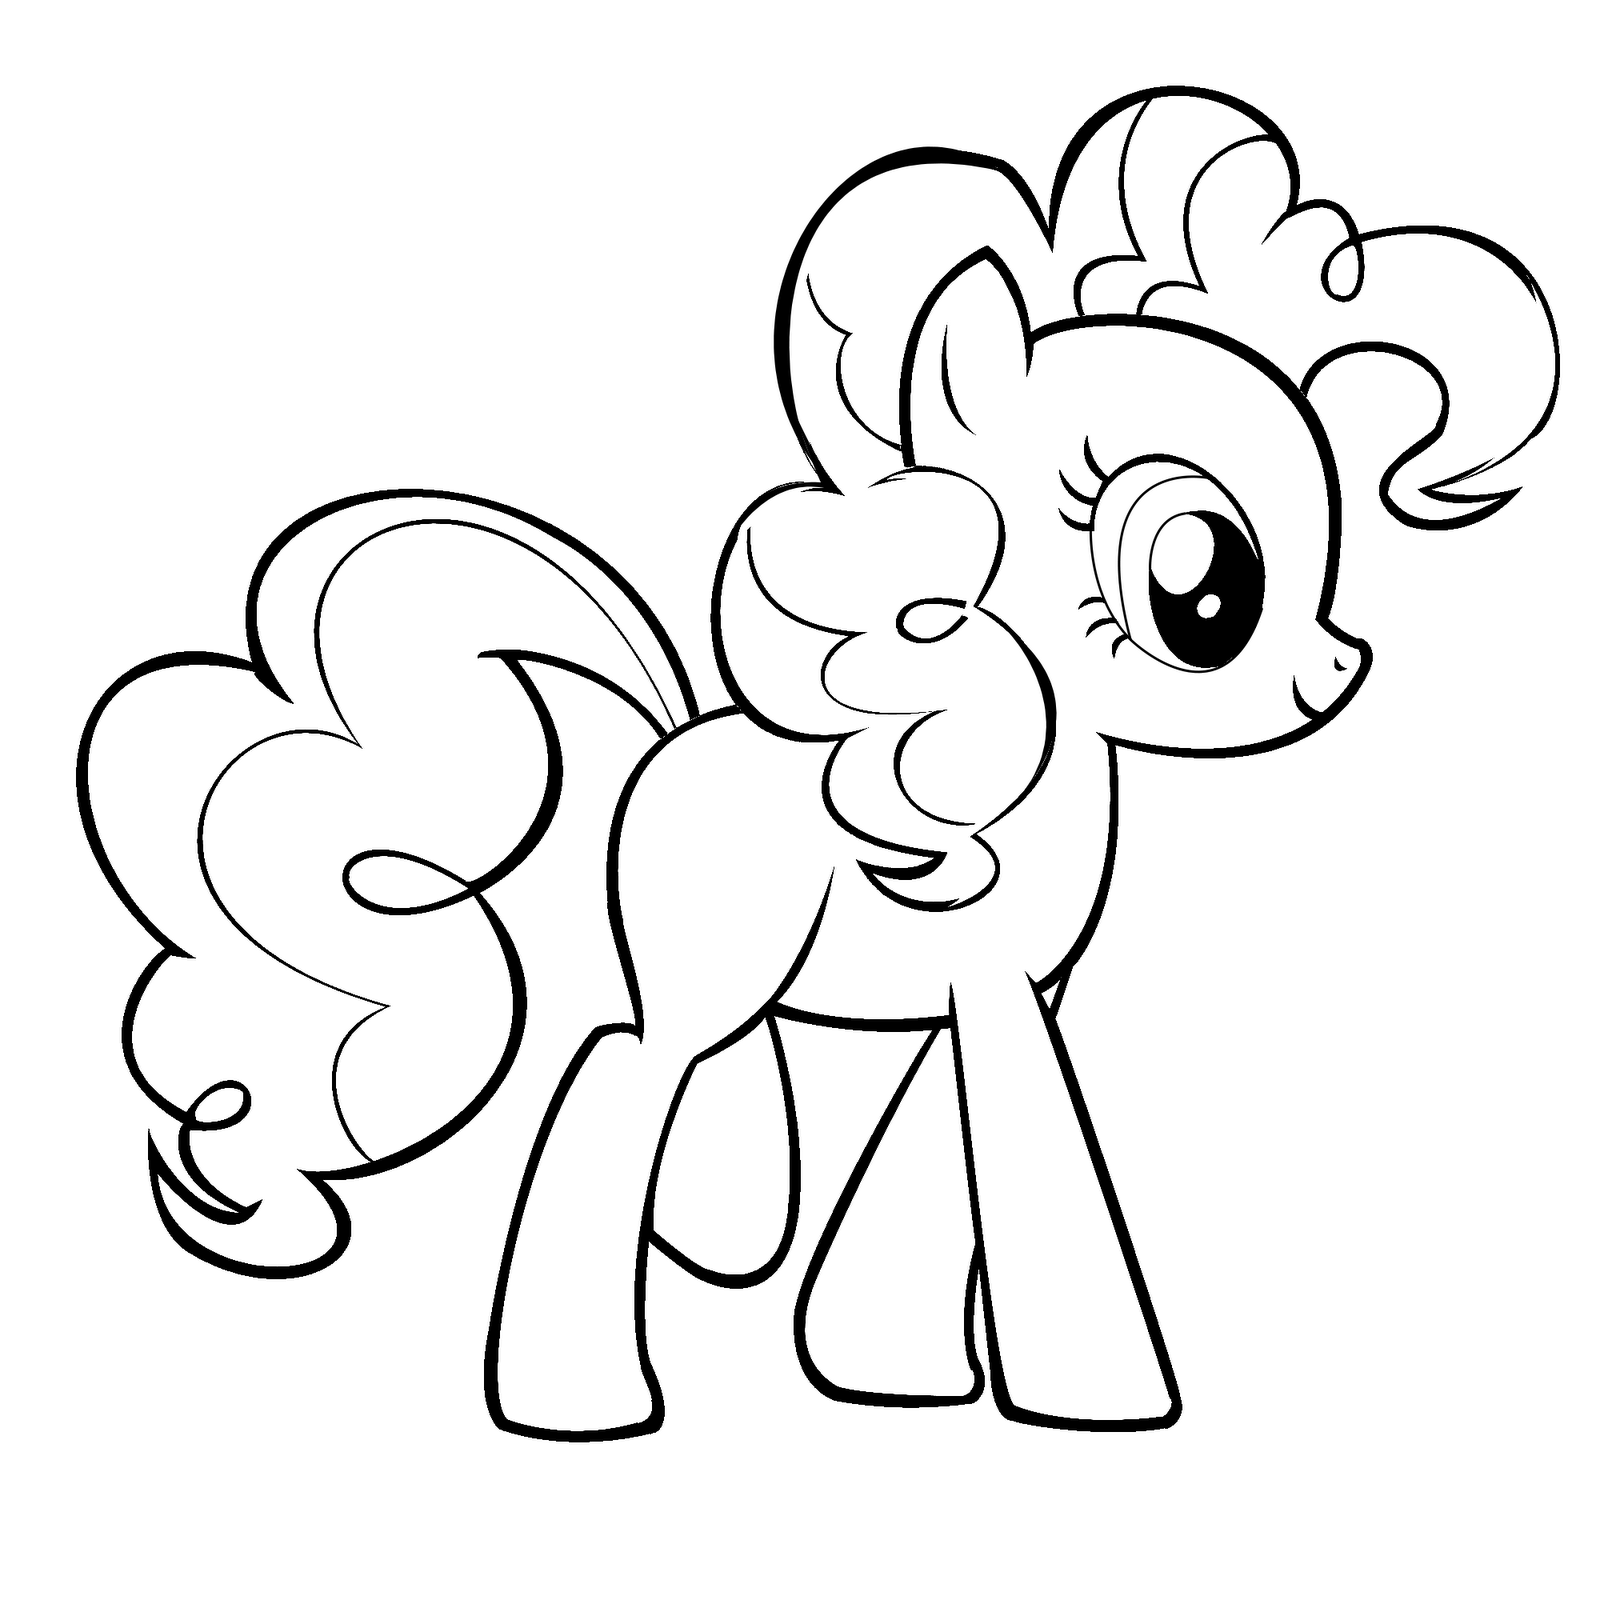 My Little Pony Pinkie Pie Coloring Pages Malvorlagen Pinterest